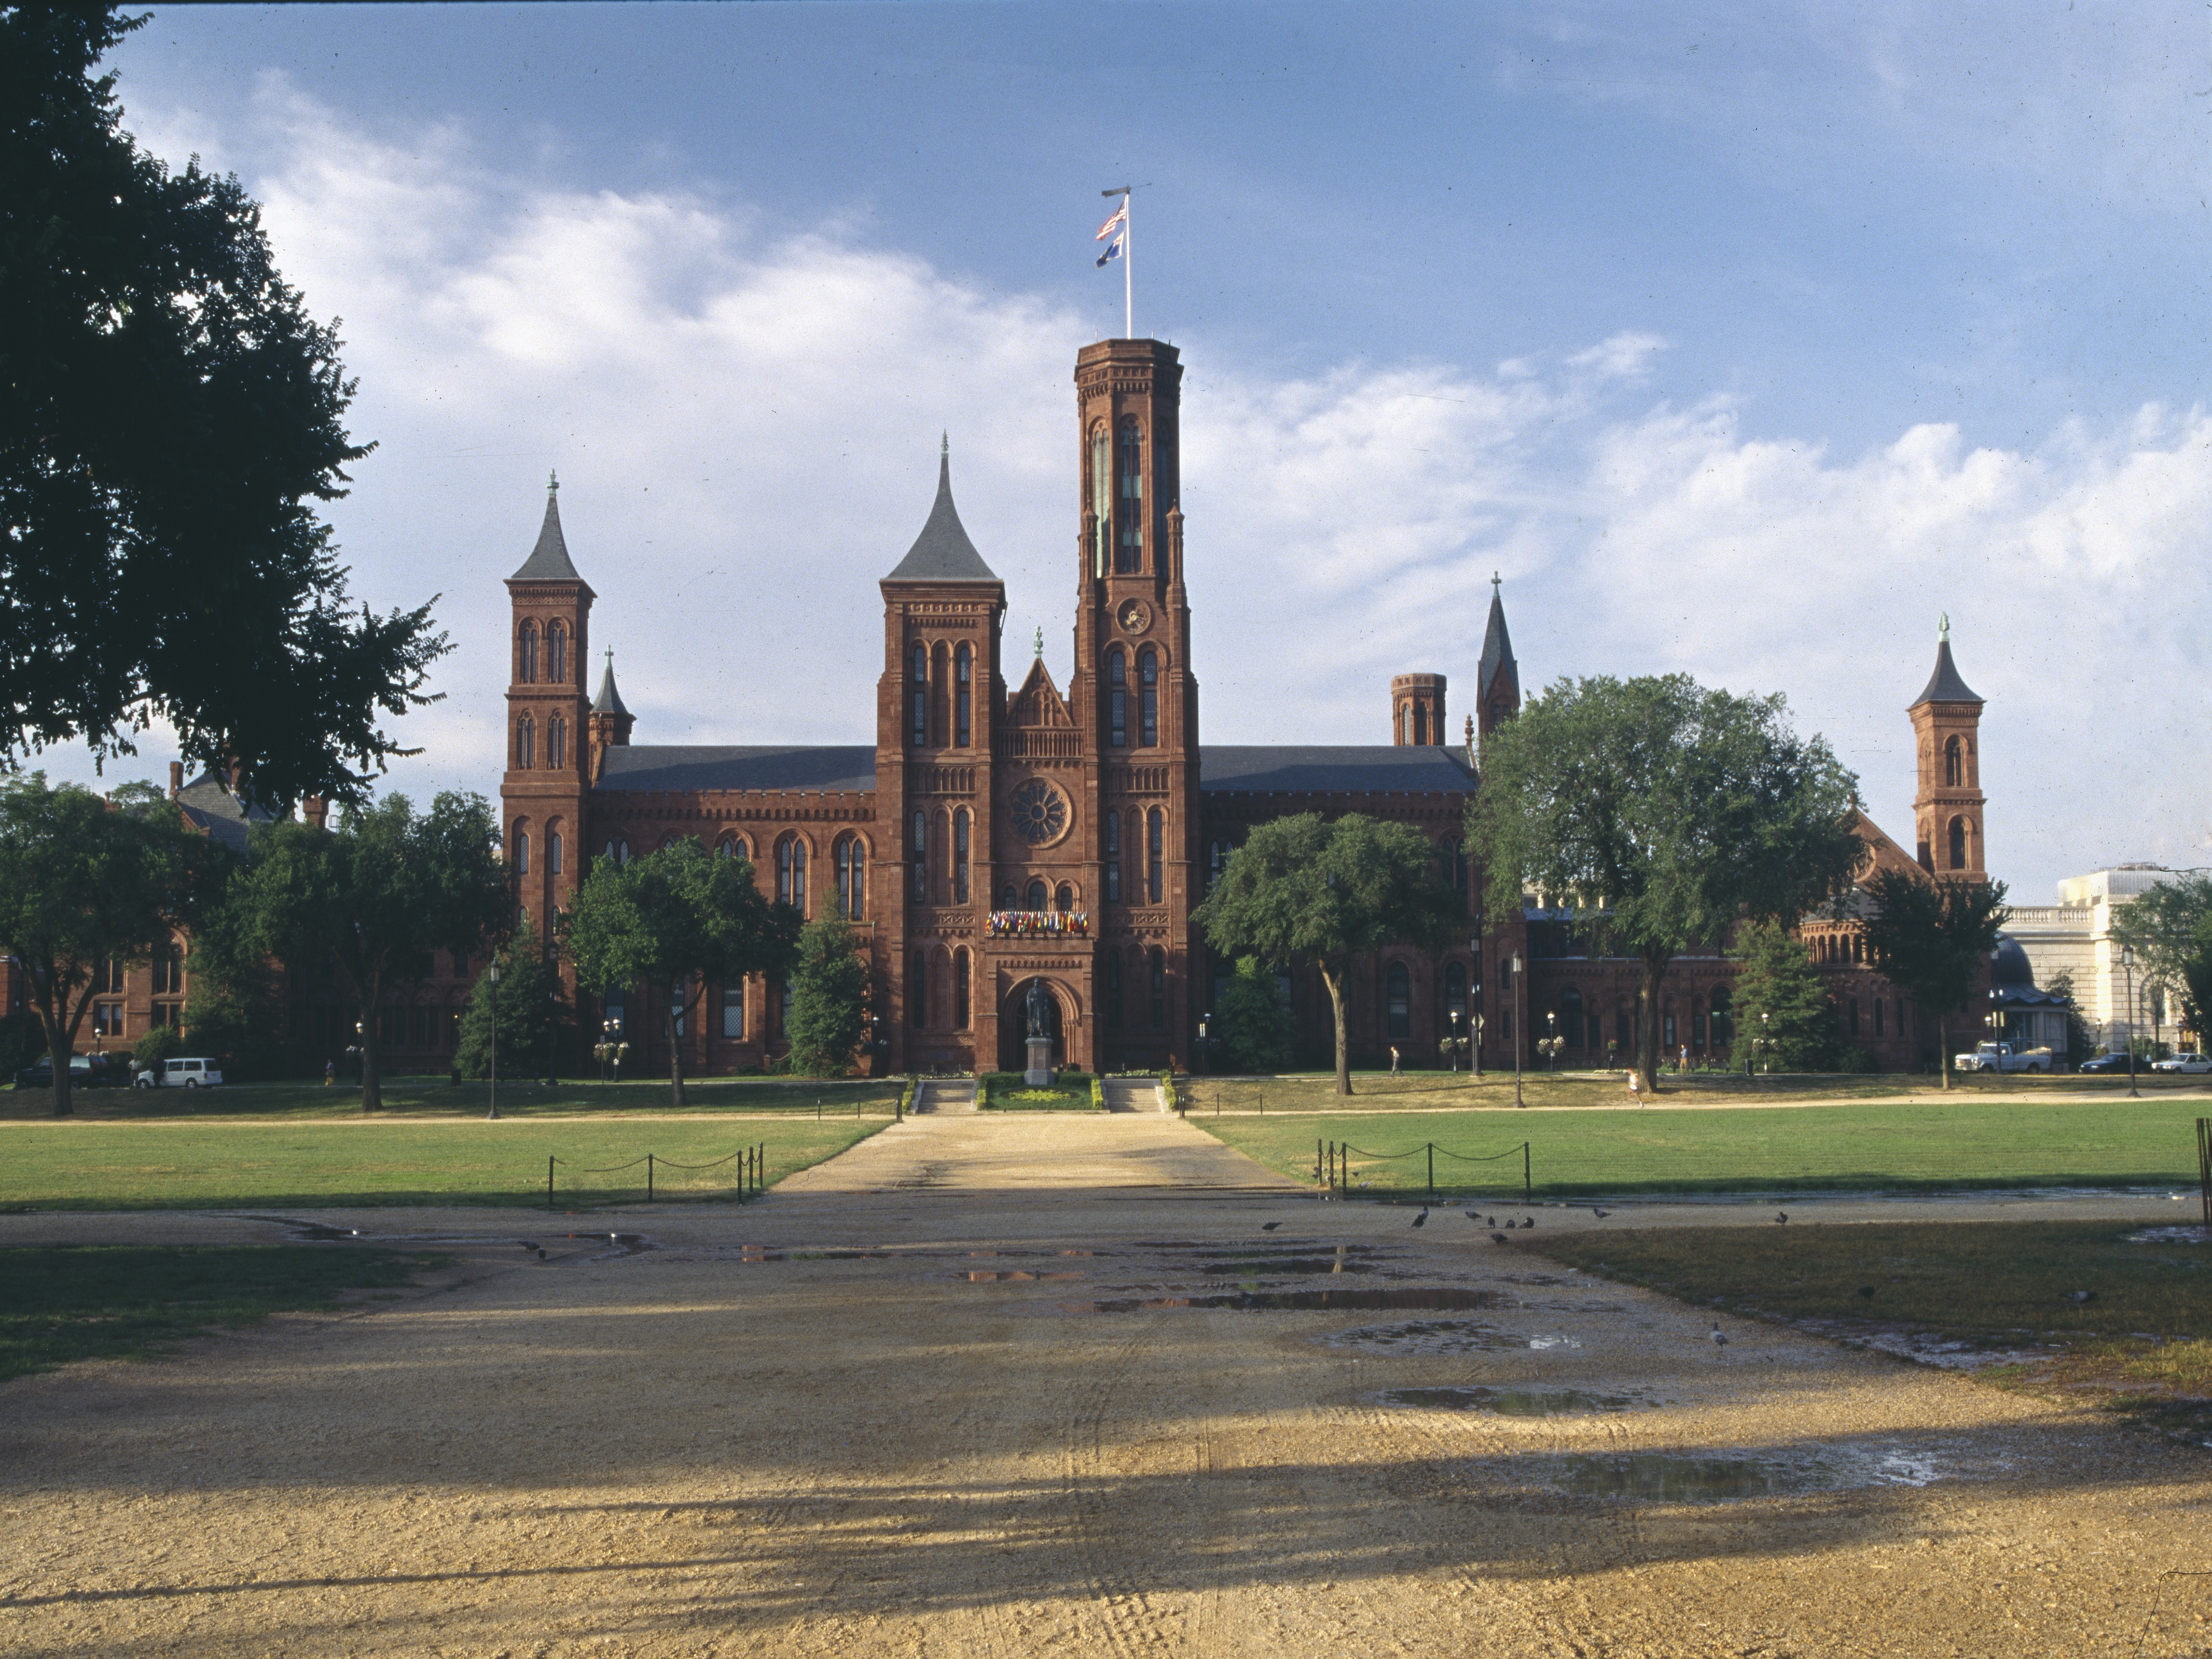 The original Smithsonian Institution building, nicknamed